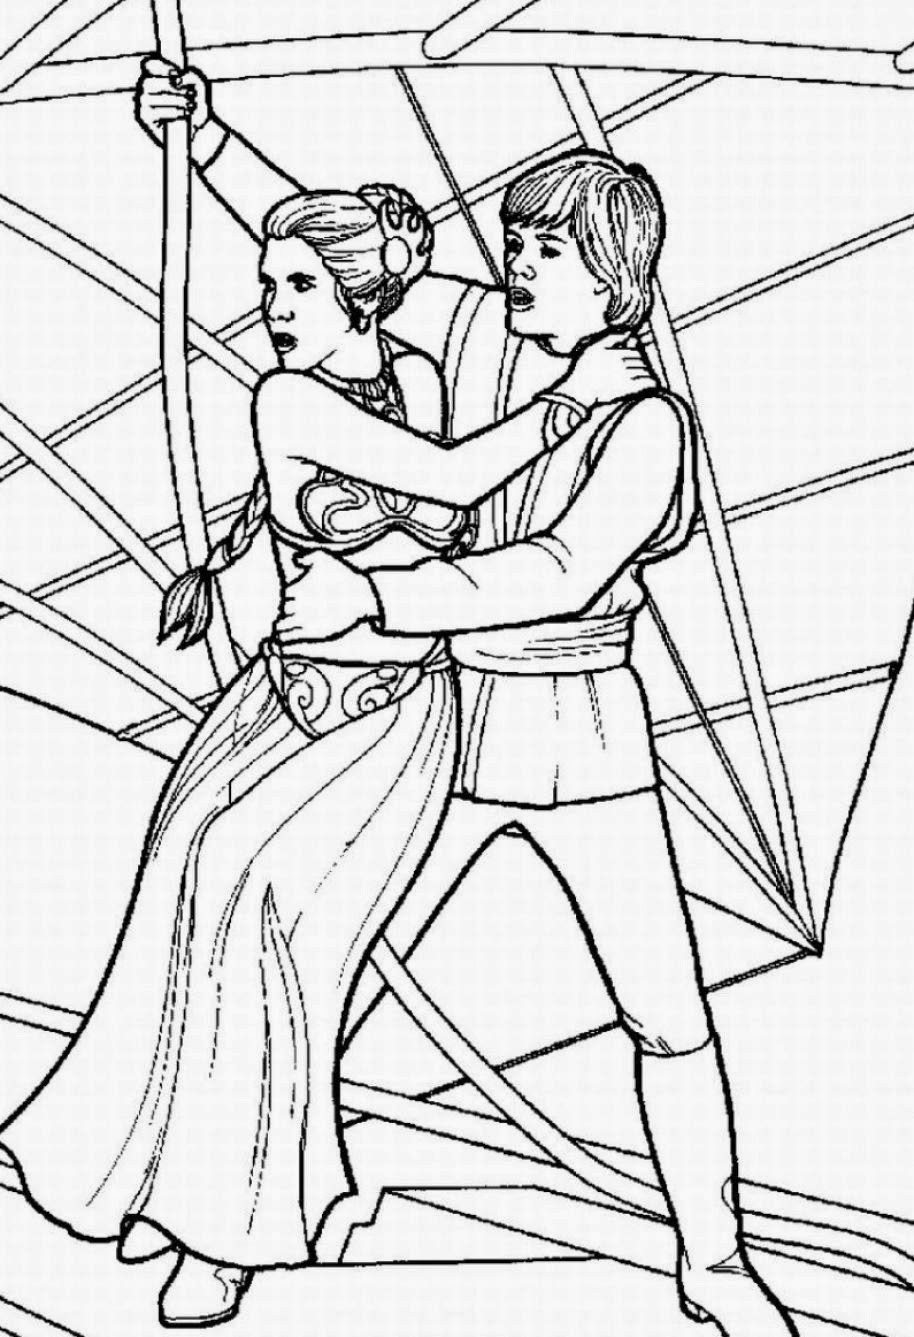 color pages star wars free printable star wars coloring pages free printable star color pages wars